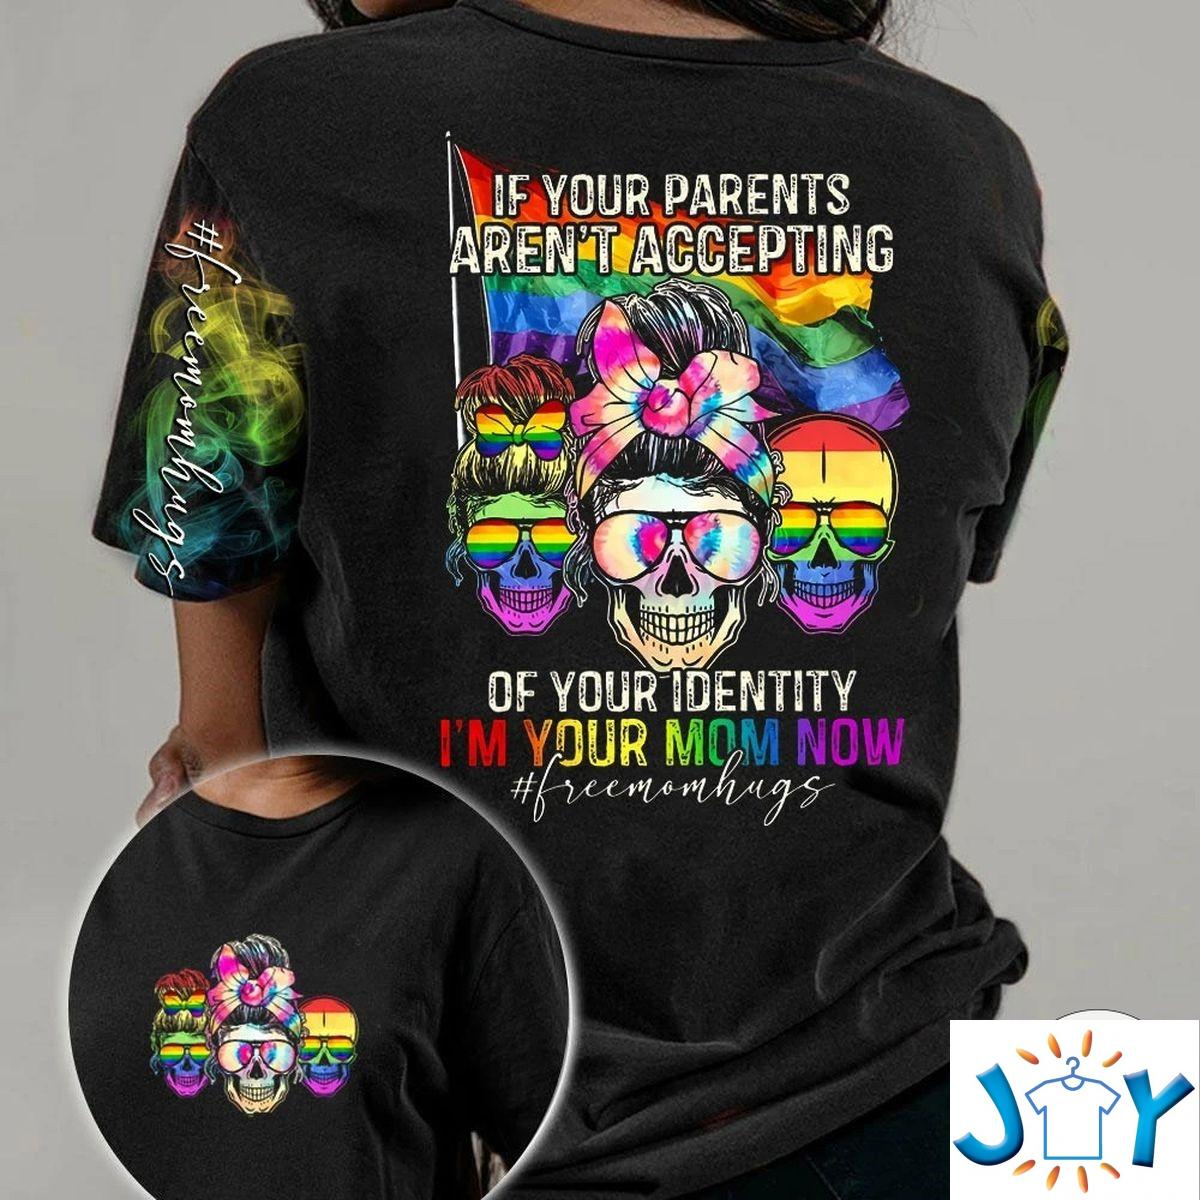 LGBT Skull If Your Parents Aren't Accepting Of Your Identity I'm Your Mom Now 3D AOP Shirt, Hoodie